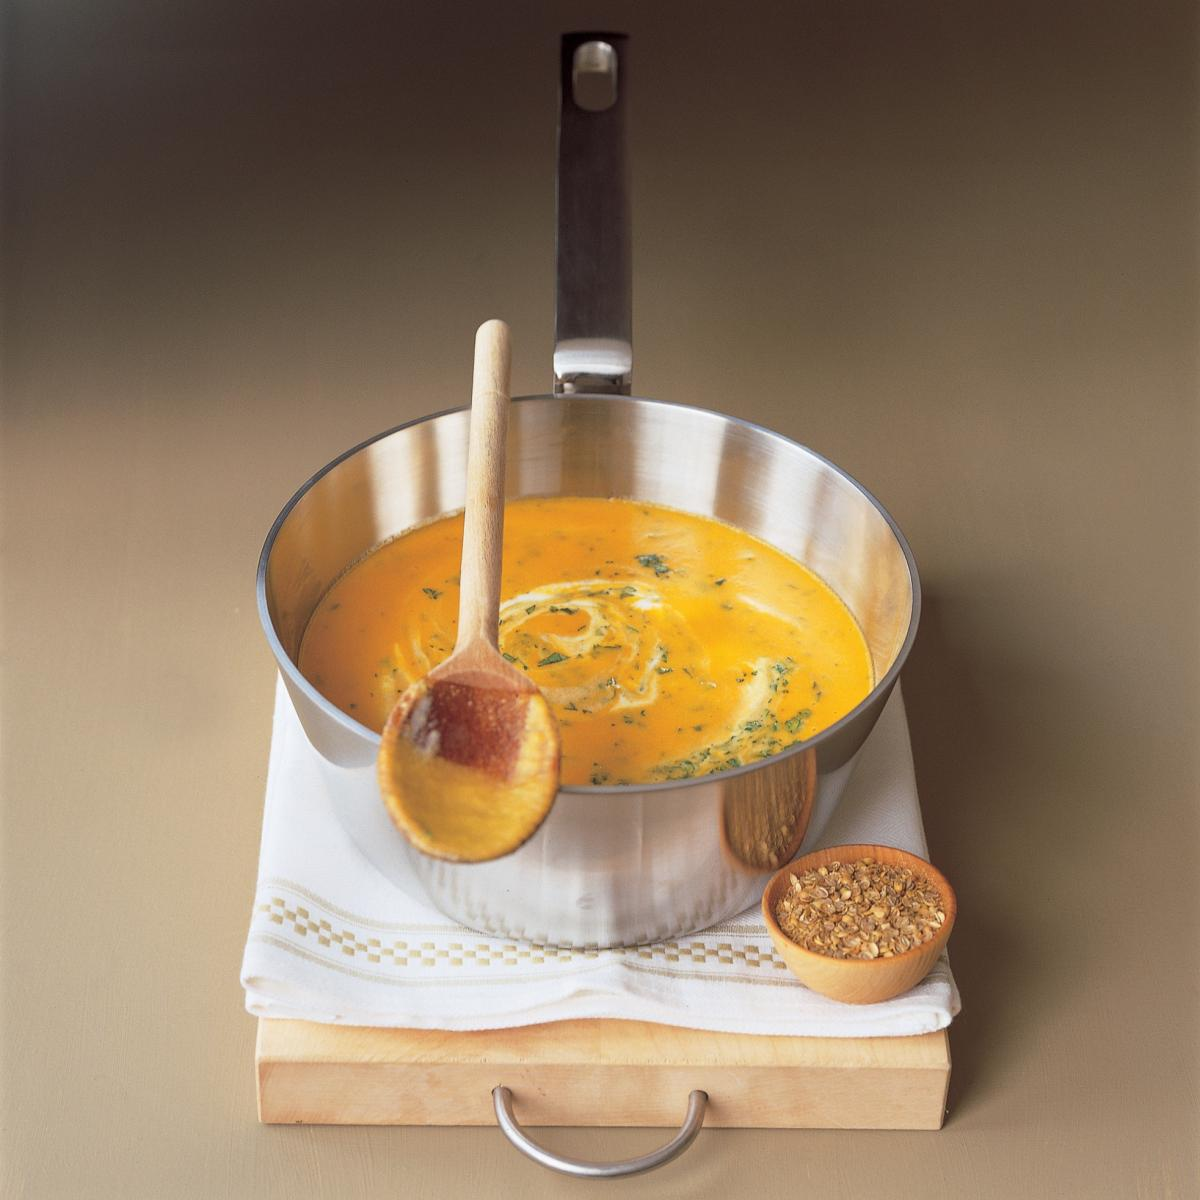 A picture of Delia's Carrot and Coriander Soup recipe